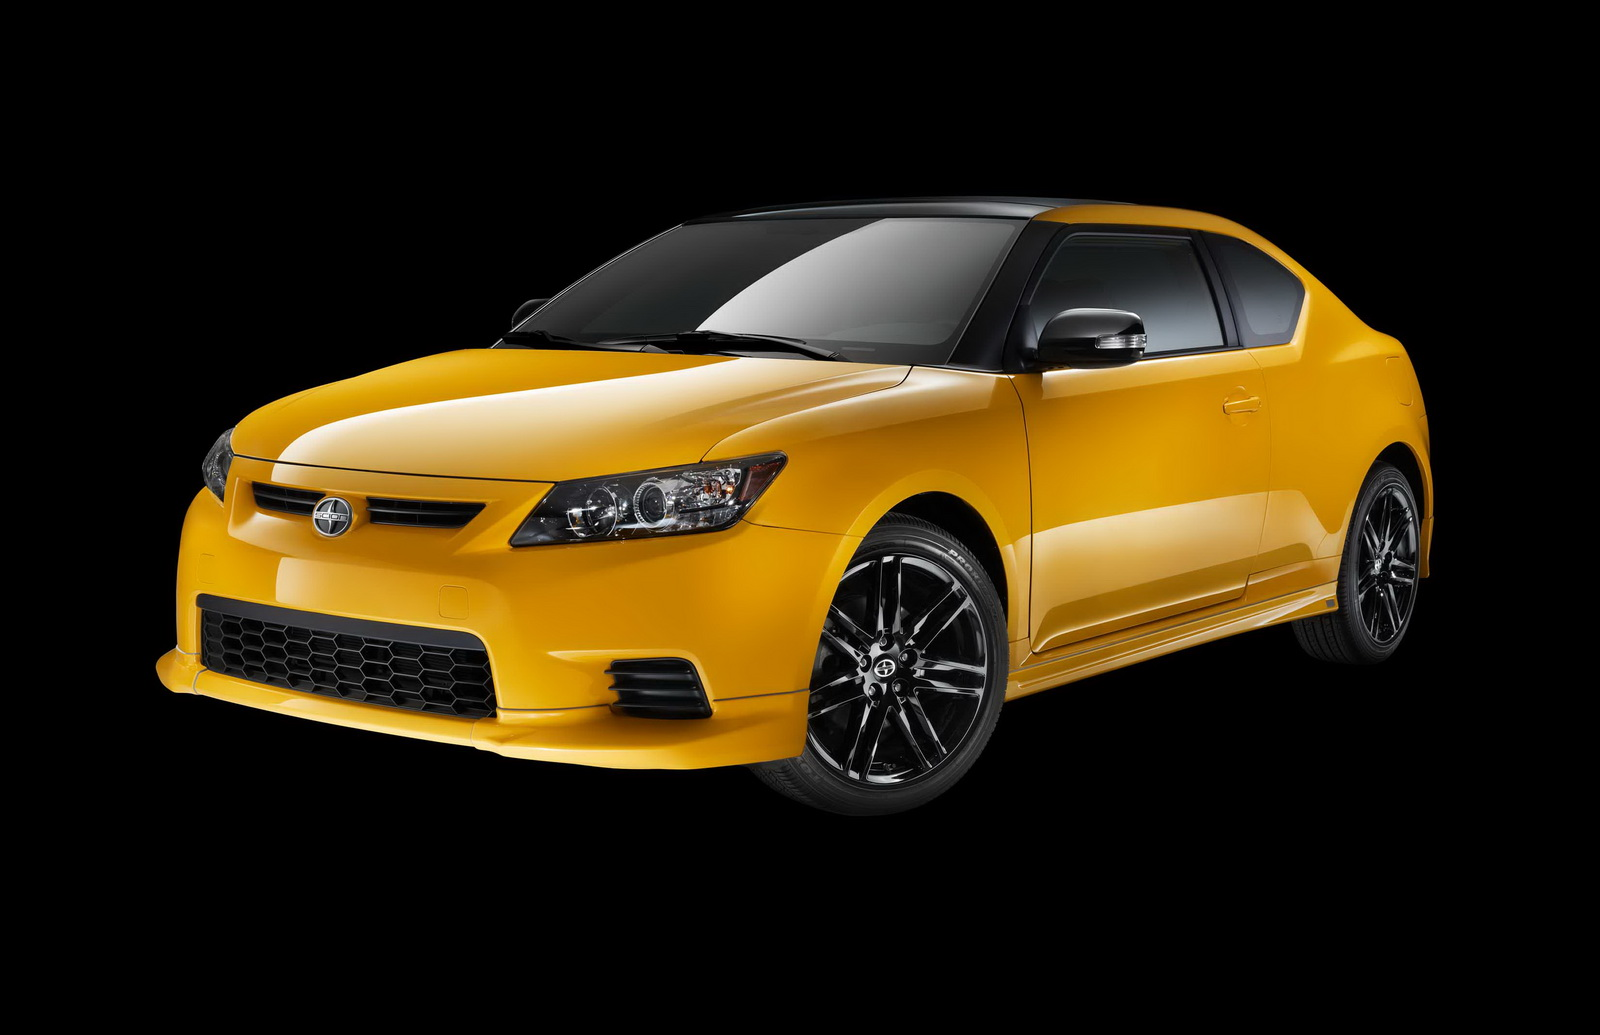 scion announces pricing for 2012 tc and tc release series 7 0 models. Black Bedroom Furniture Sets. Home Design Ideas